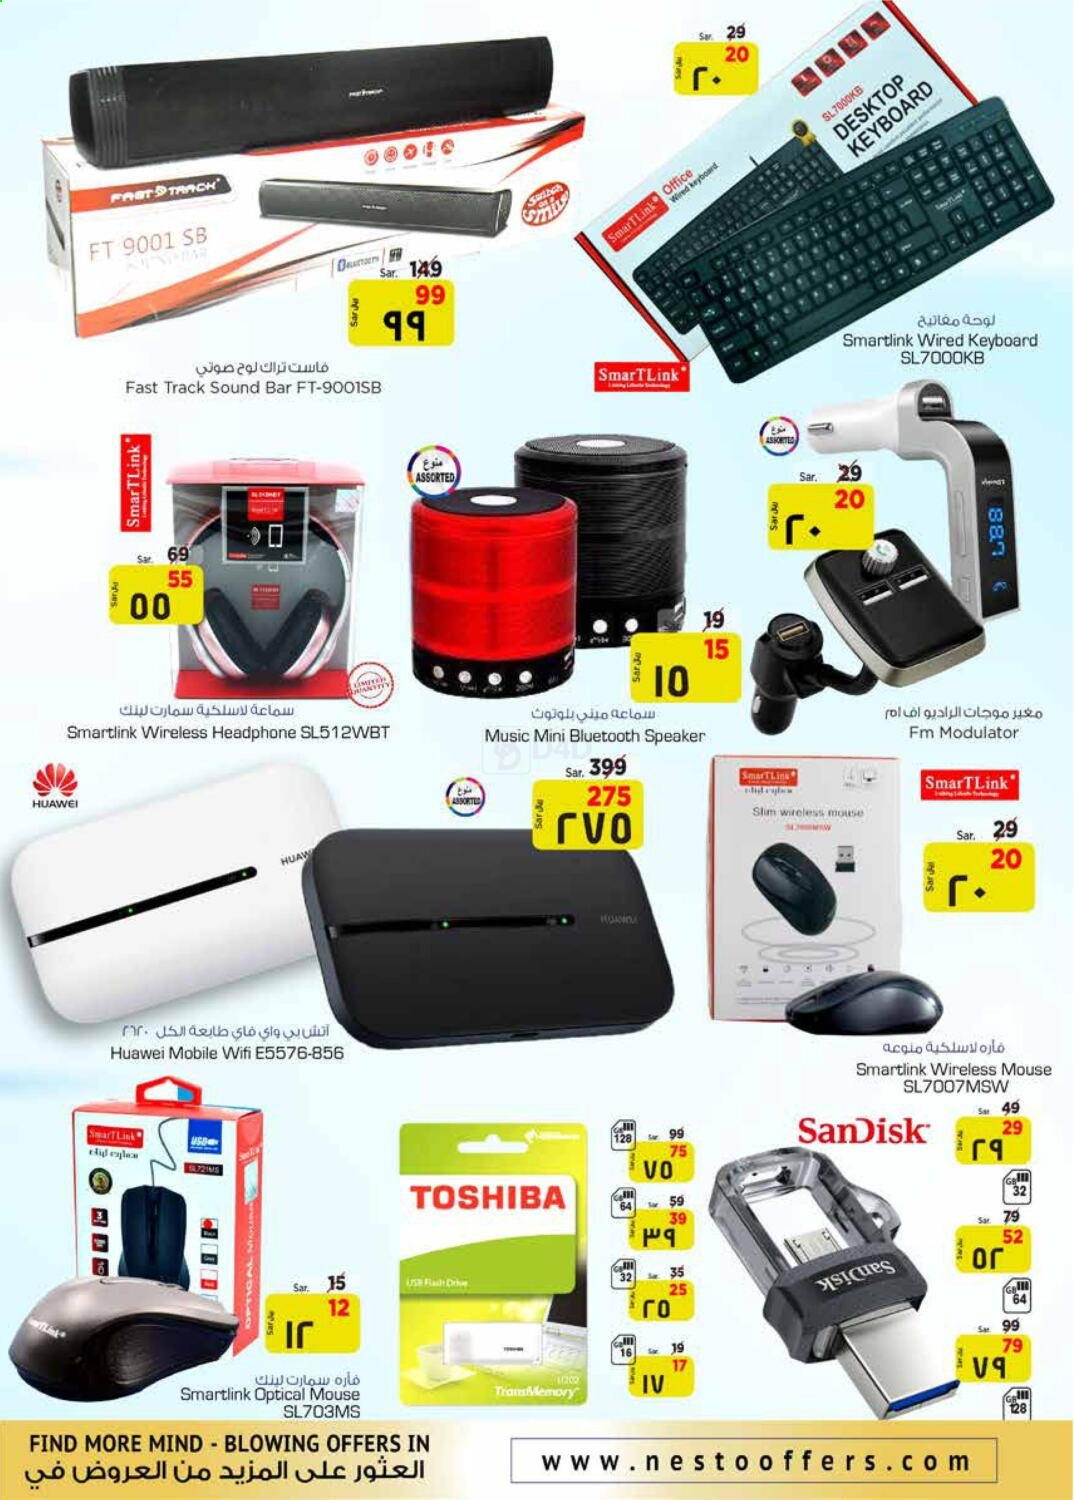 <retailer> - <MM.DD.YYYY - MM.DD.YYYY> - Sales products - ,<products from offers>. Page 40.